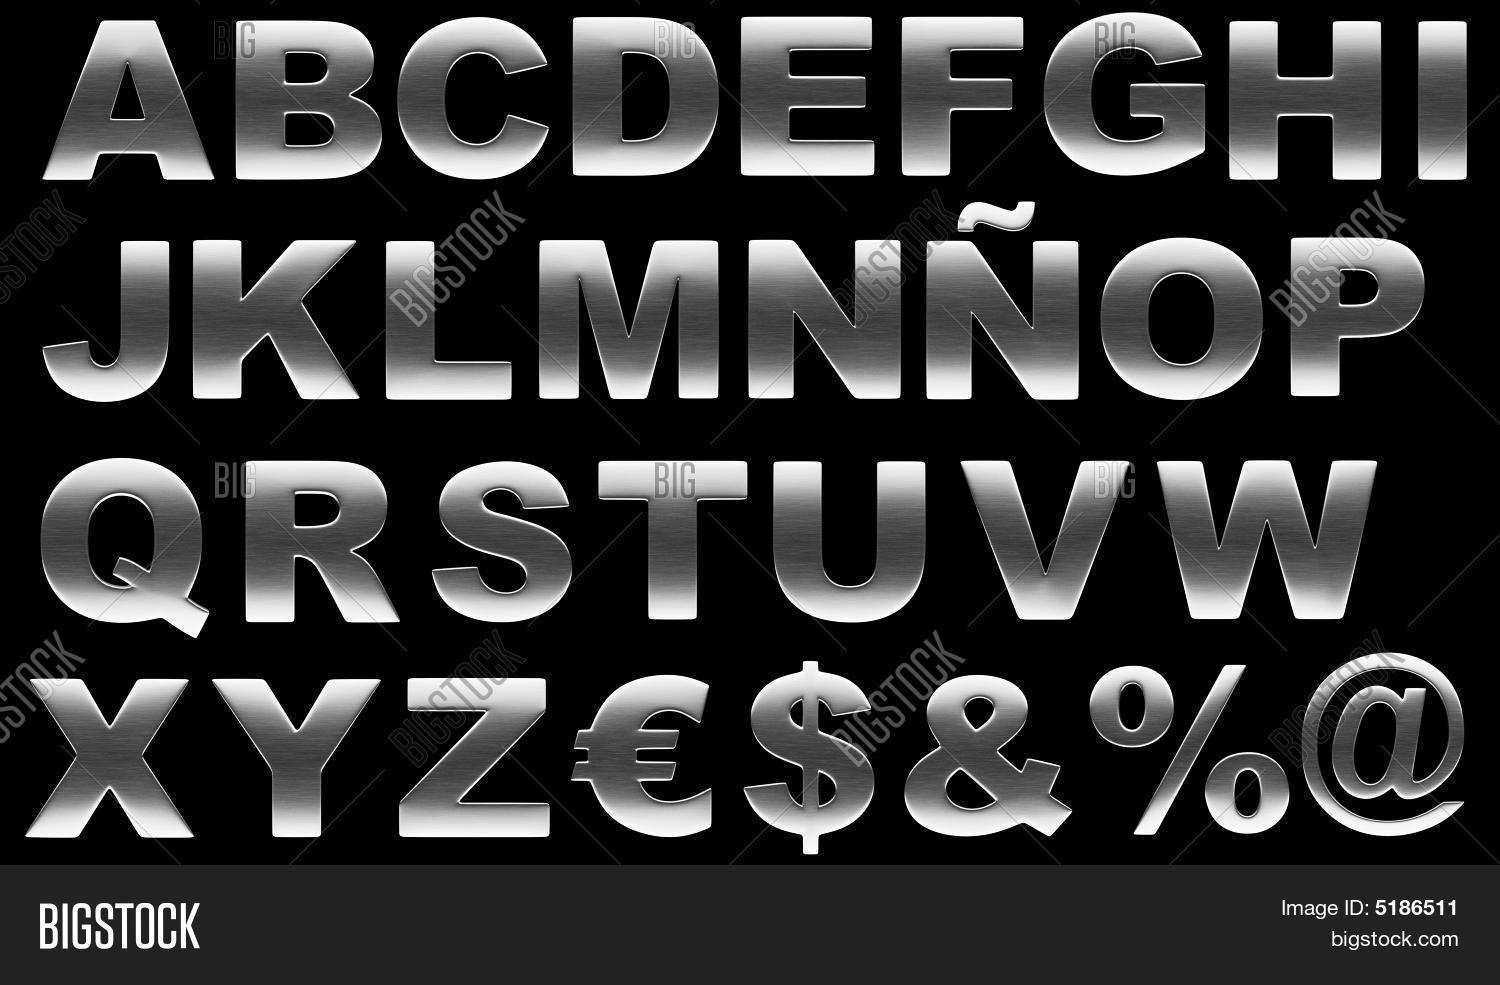 alphabet brushed metal letters isolated on black